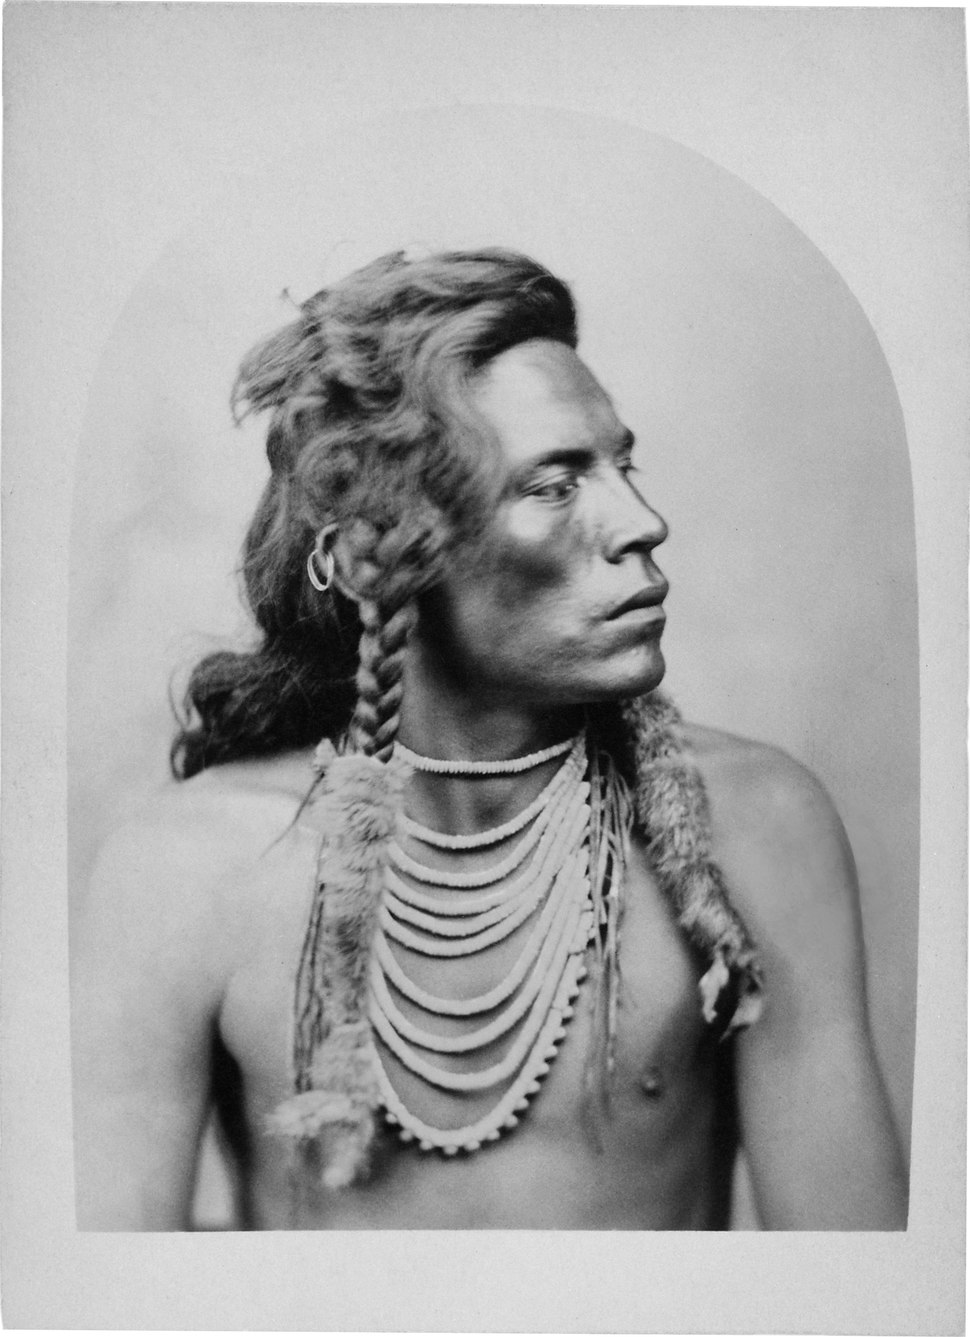 Portrait of Curley, A Crow Indian Scout with the Seventh Cavalry at the Battle of the Little Bighorn - NARA - 533090 NewEdit